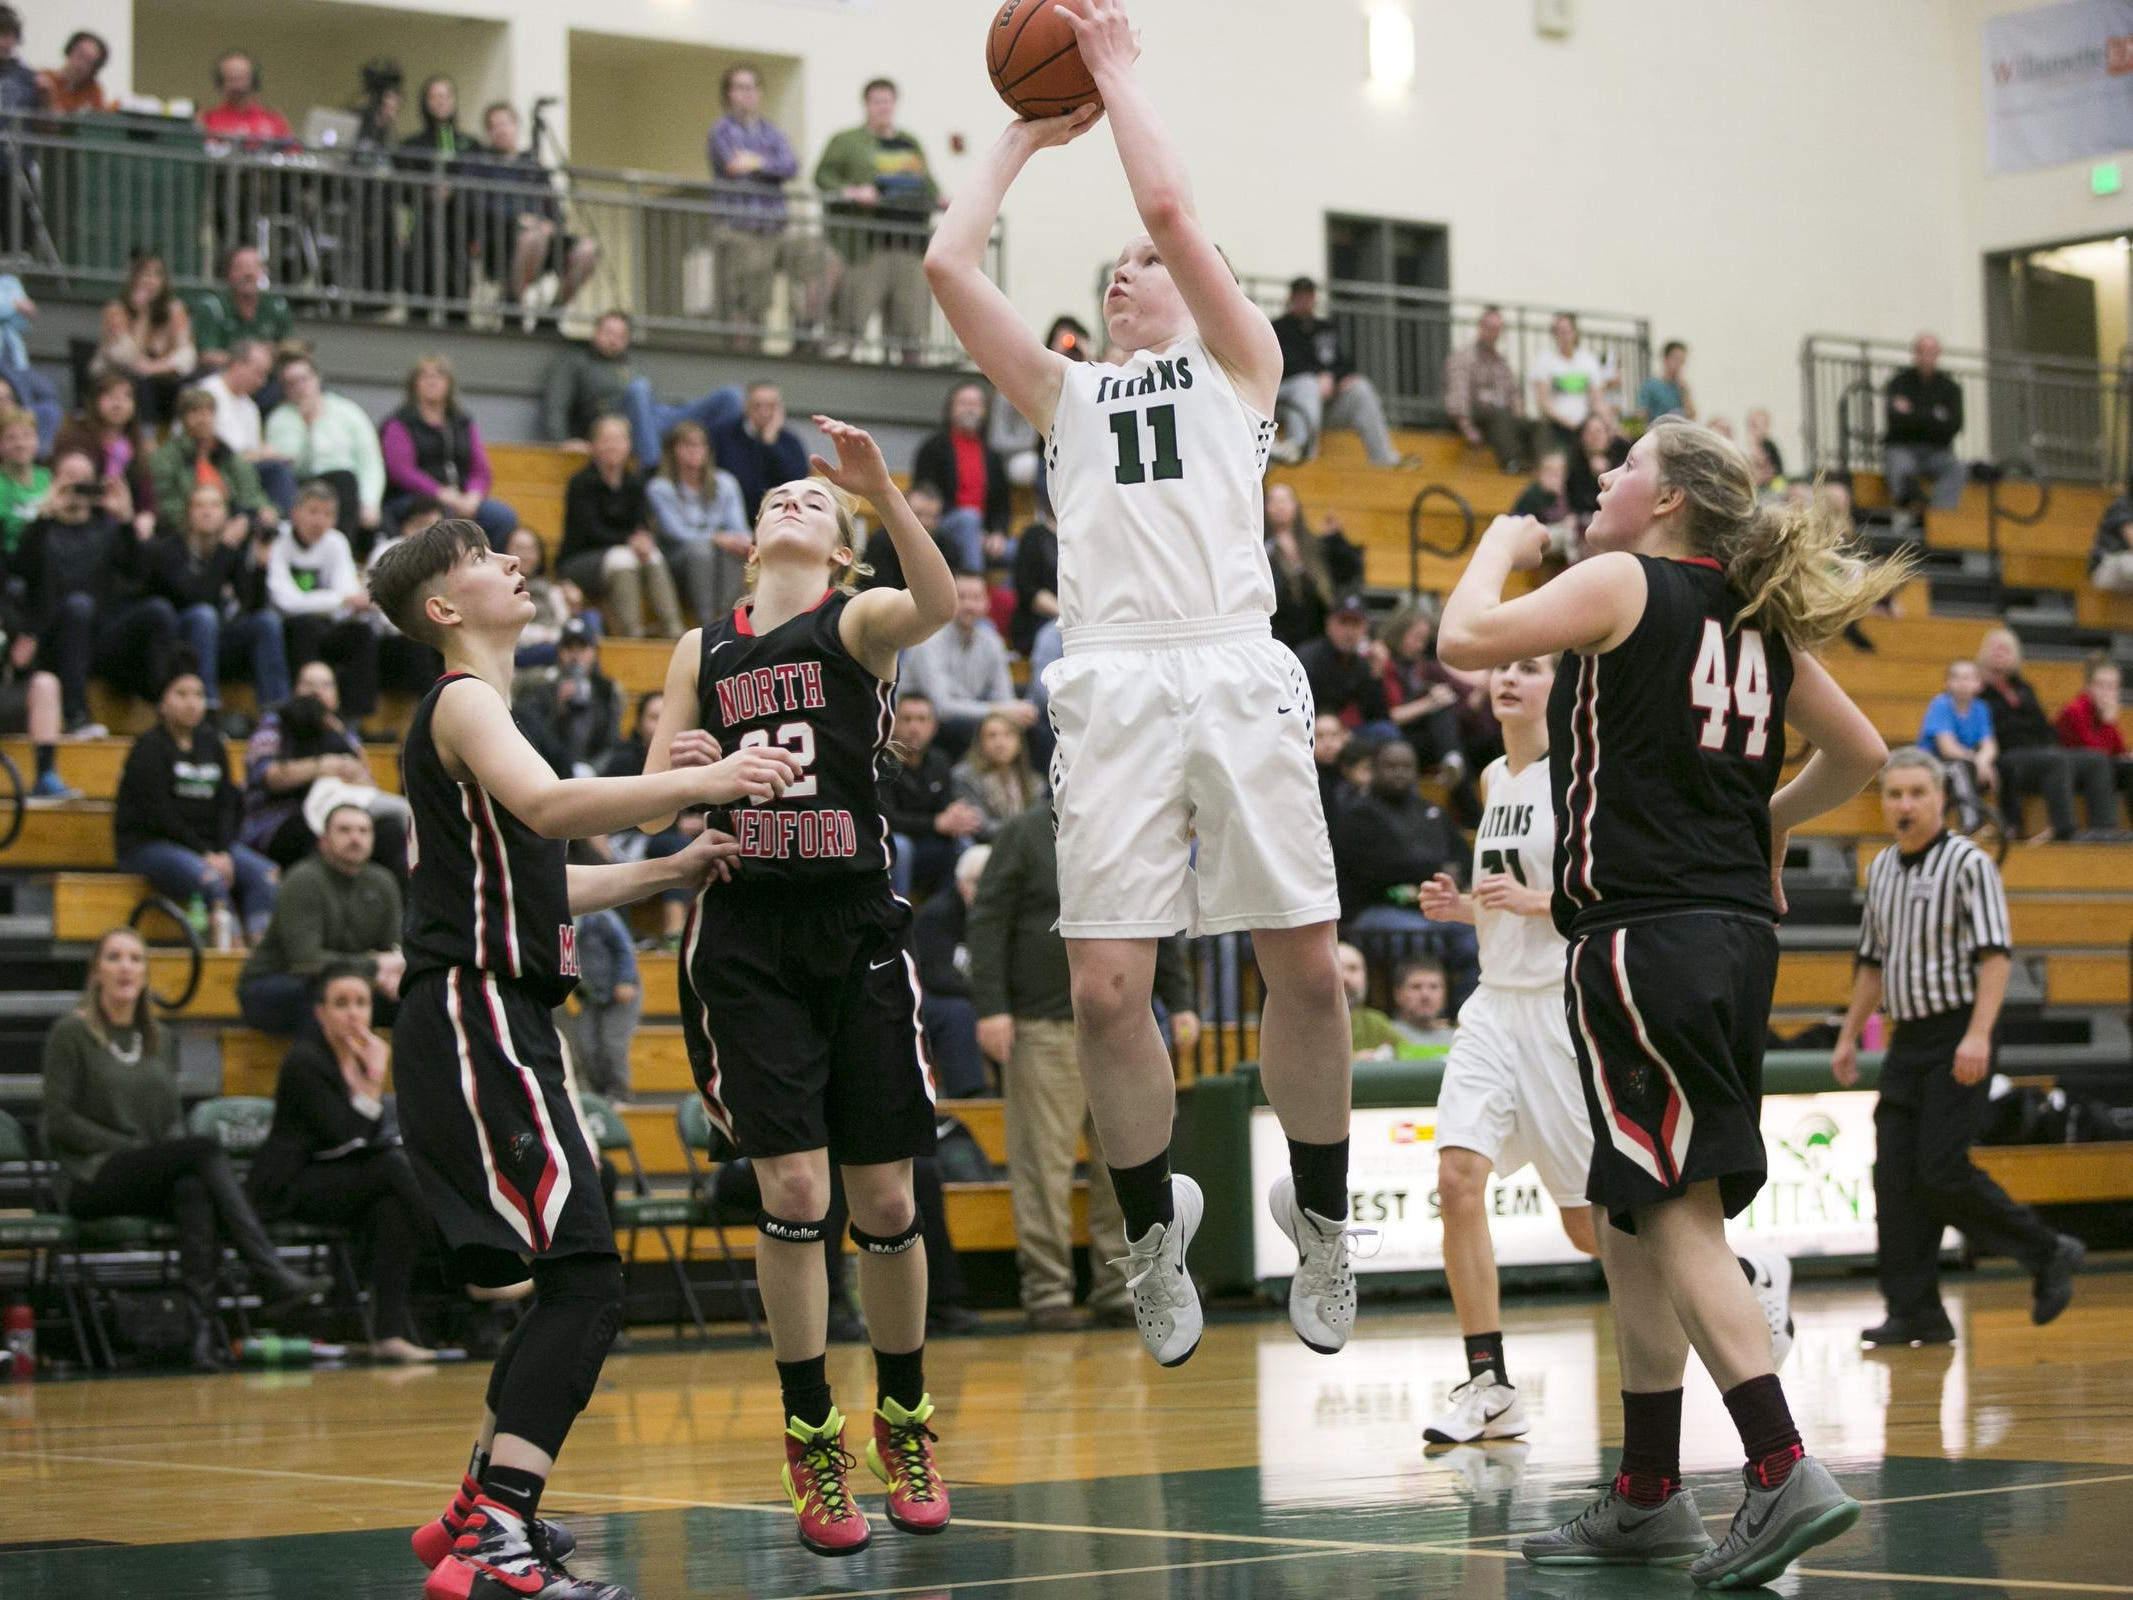 West Salem junior Delaney Henery goes up for a basket in a game against North Medford at West Salem High School on Tuesday, March 1, 2016. West Salem won the OSAA round one playoff game 58-55 in overtime.